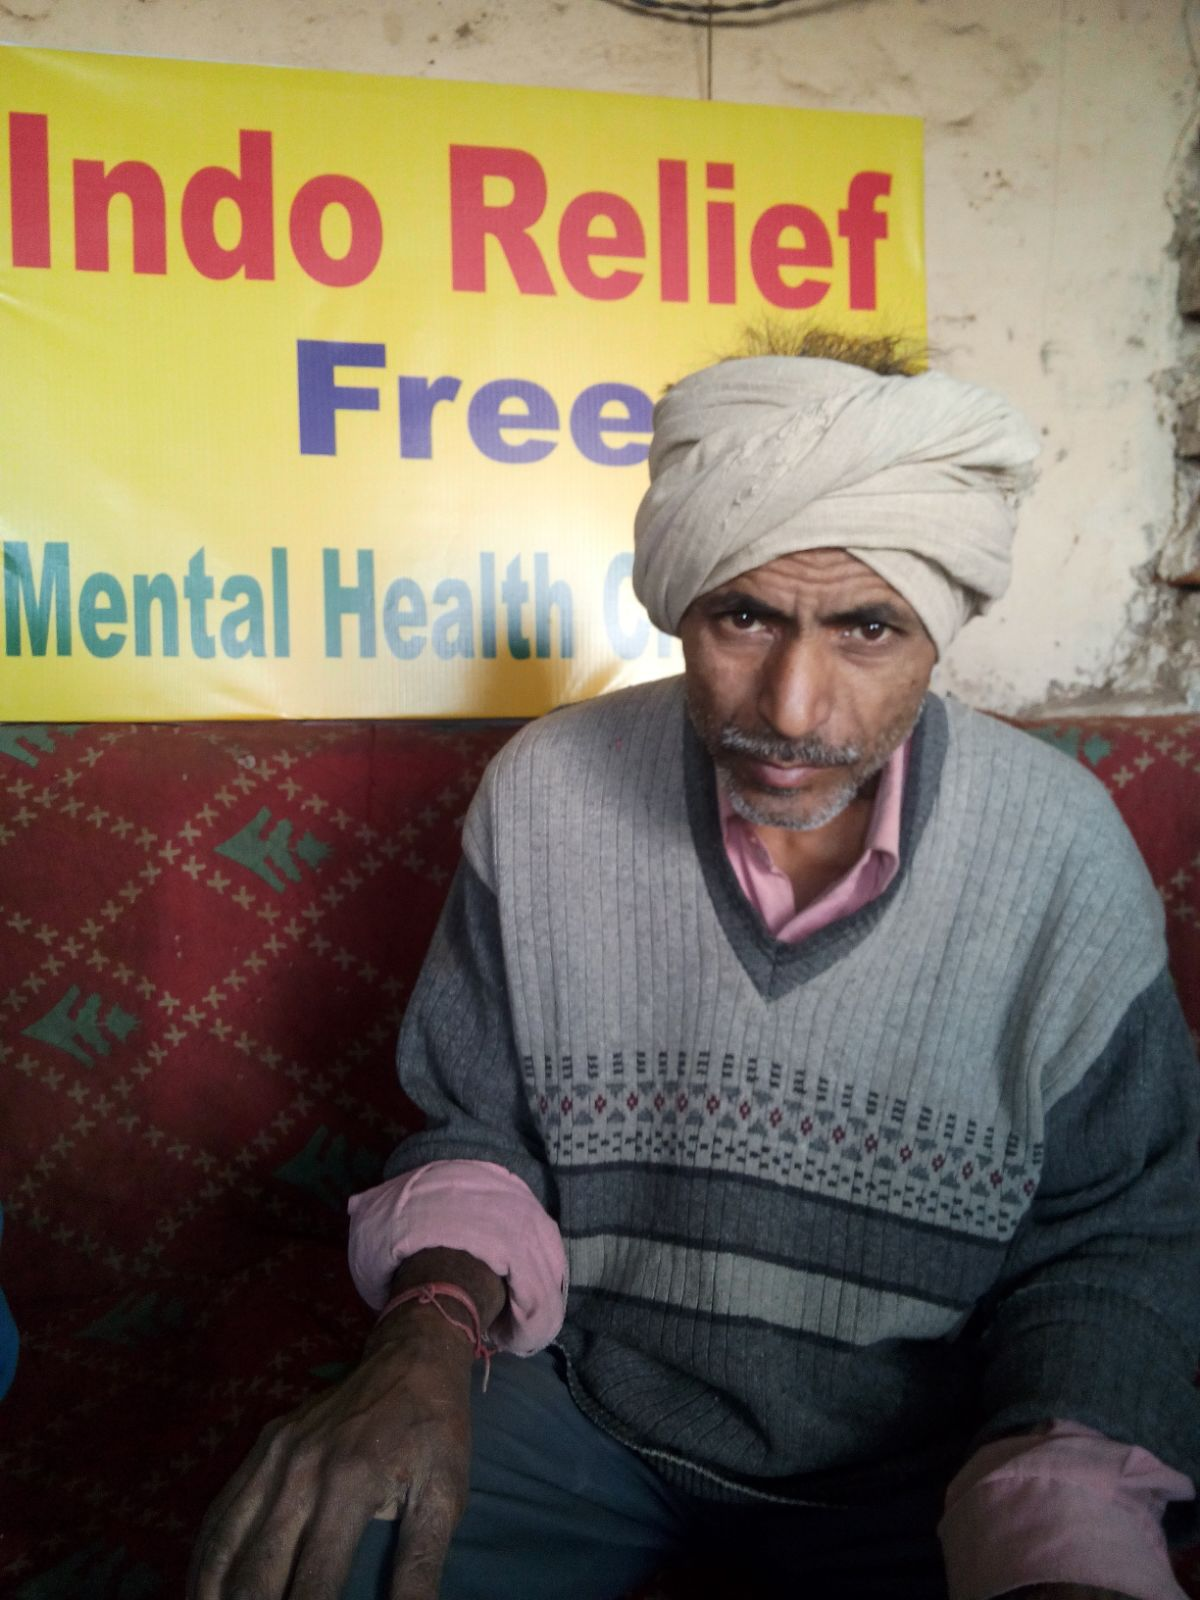 Phani is 60 years old. He is worried about his son, who drinks very heavily. Phani tells us that he does not see his son for days at a time because his son is always drinking. We encouraged Phani to bring his son to us, so that we could speak with him directly.